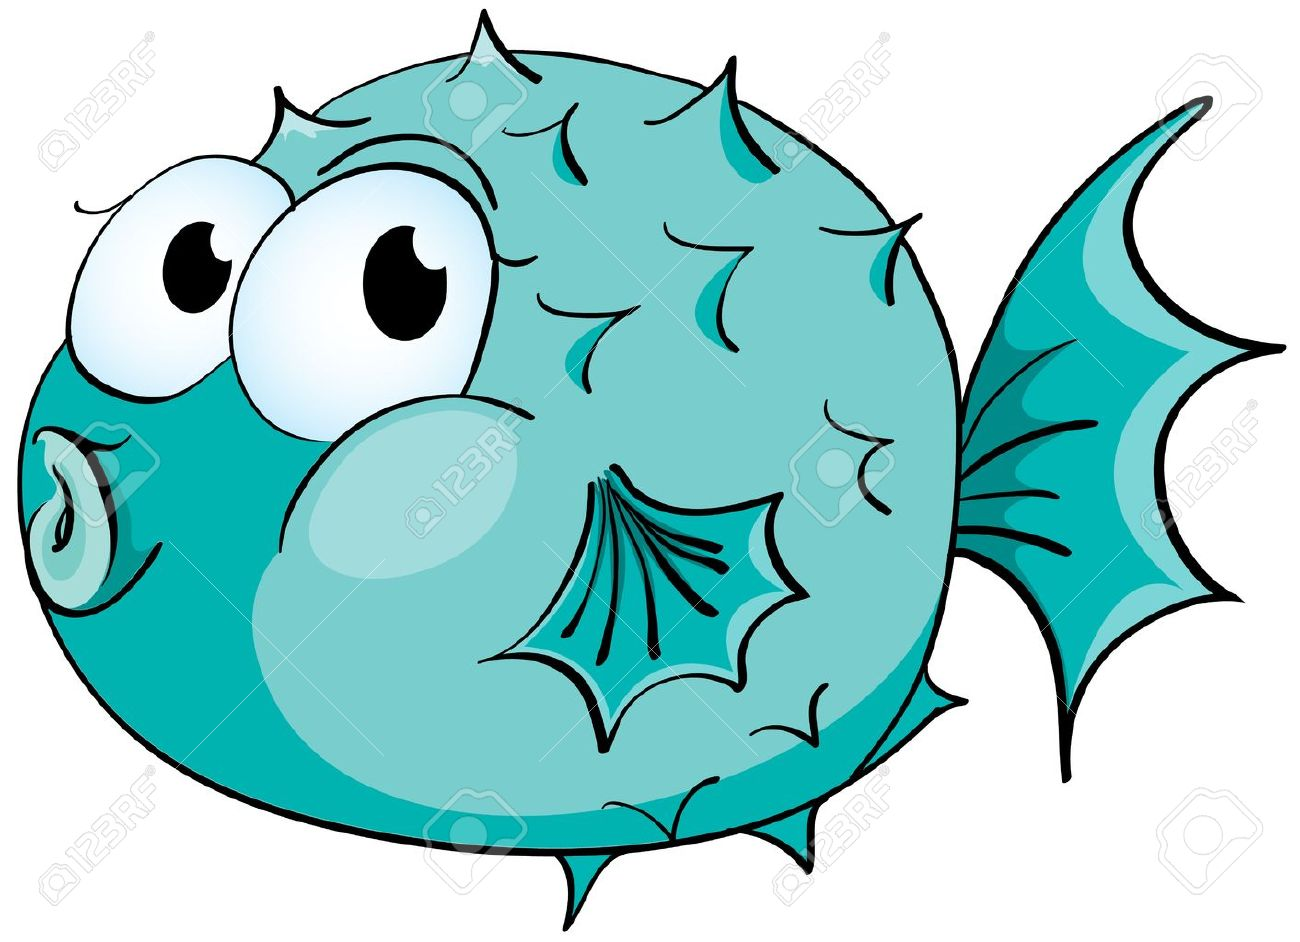 Image result for porcupine fish cartoon